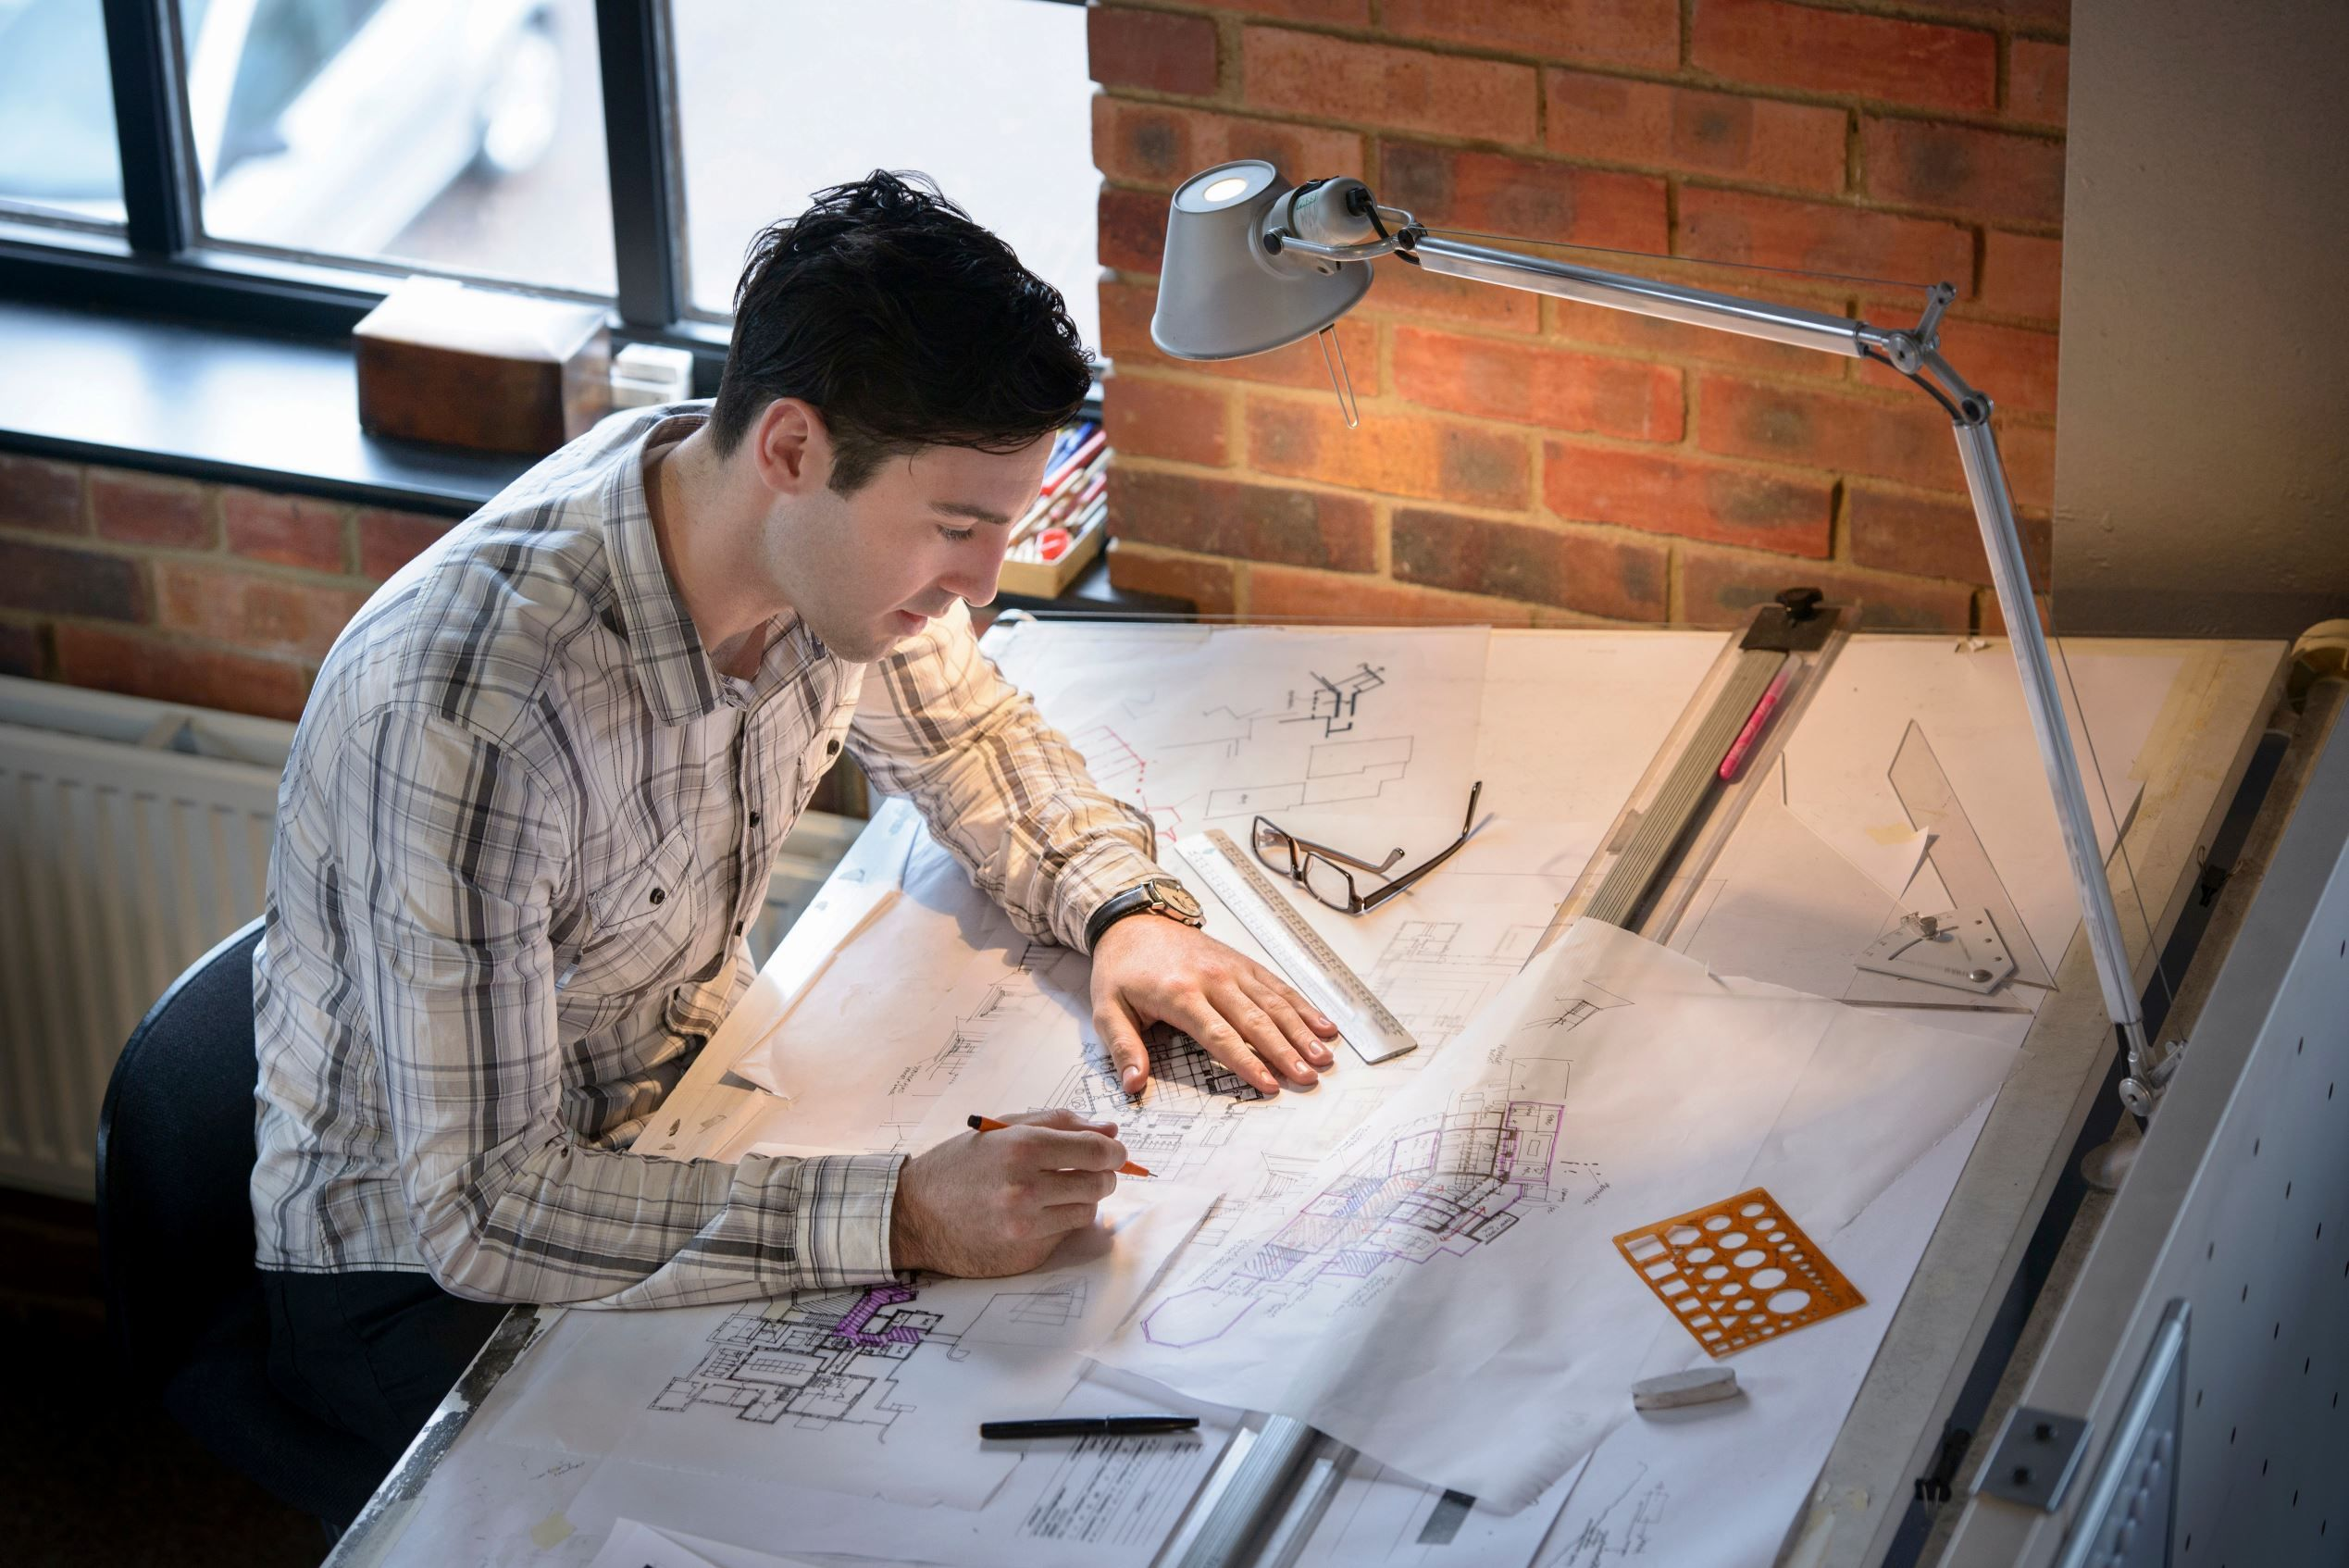 Architect drawing plans at drawing board - Monty Rakusen/cultura/Corbis